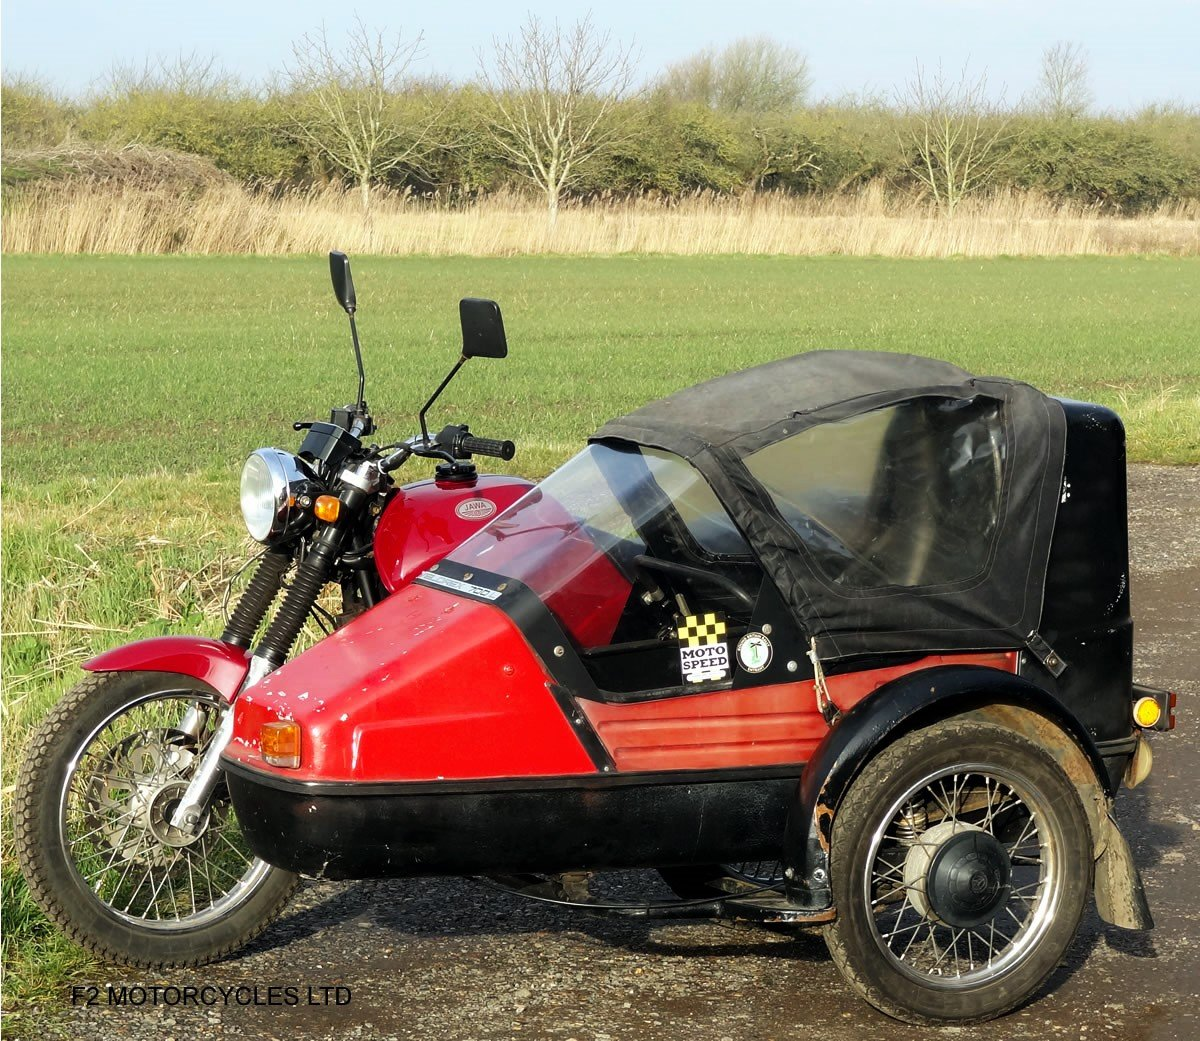 2014 Jawa 350 2-stroke with sidecar, Moted and ready to ride SOLD (picture 5 of 6)